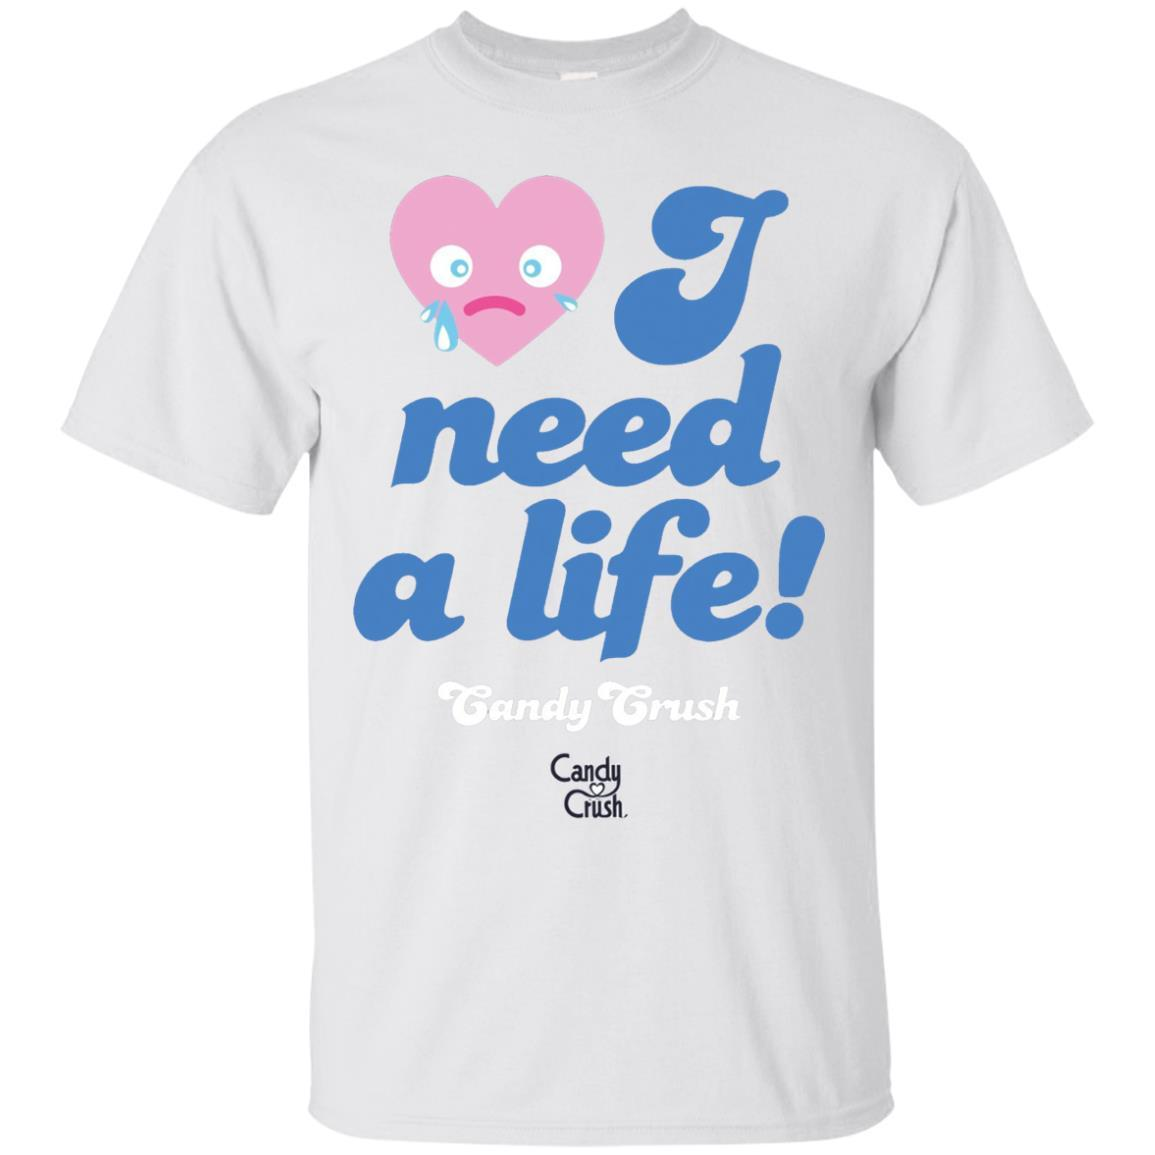 Candy Crush 'I Need a Life!' T-Shirt